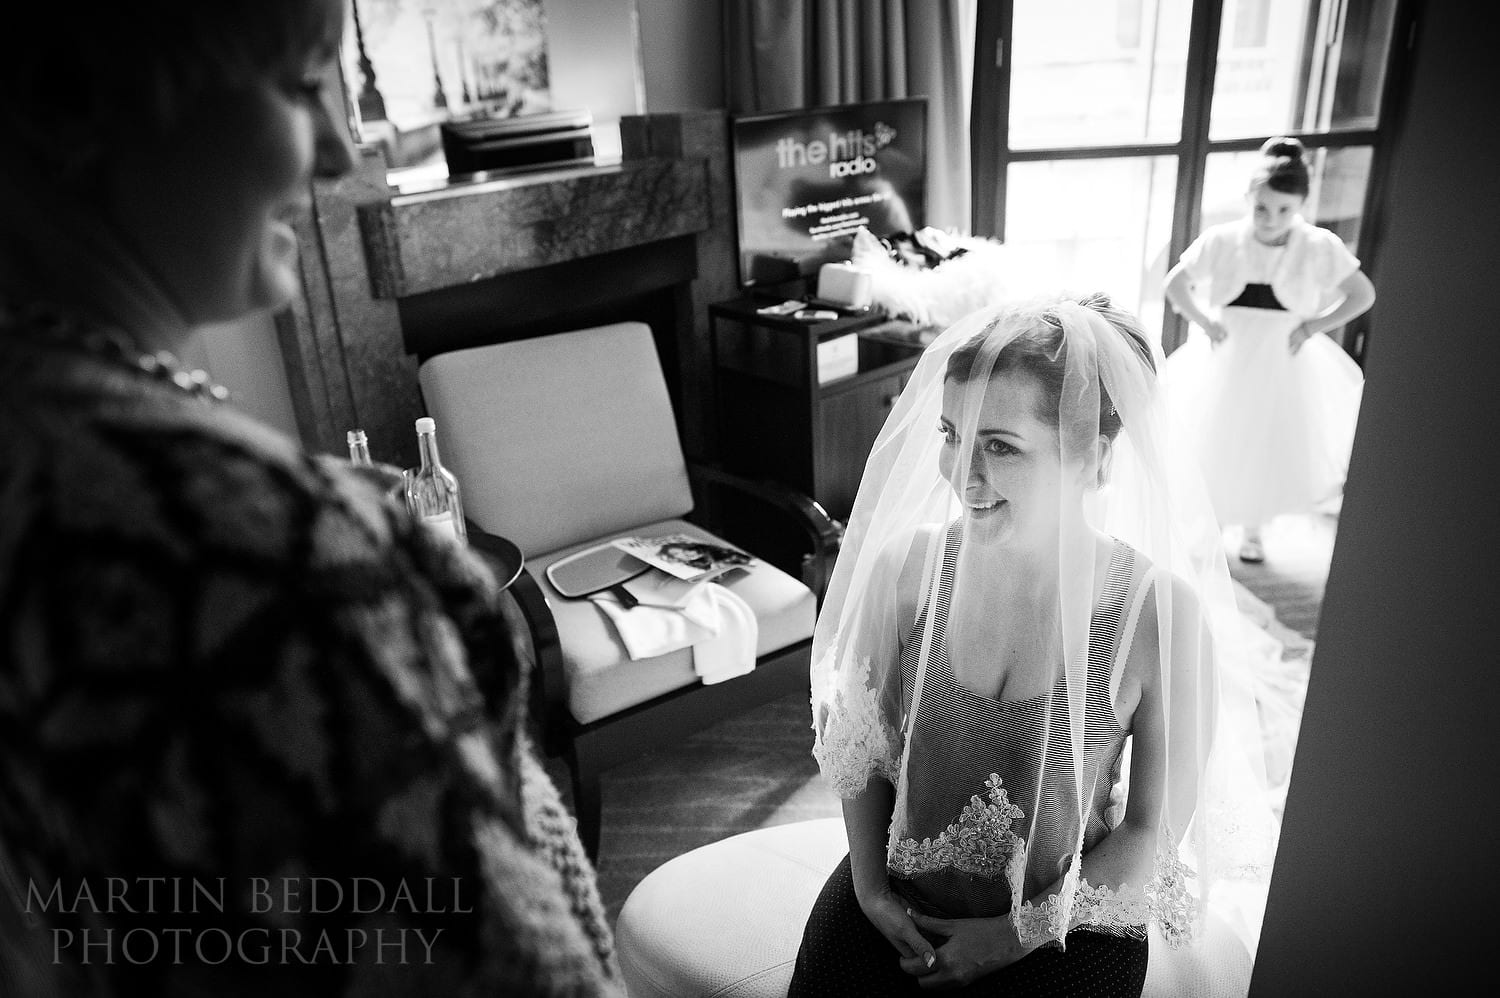 Trying on the wedding veil